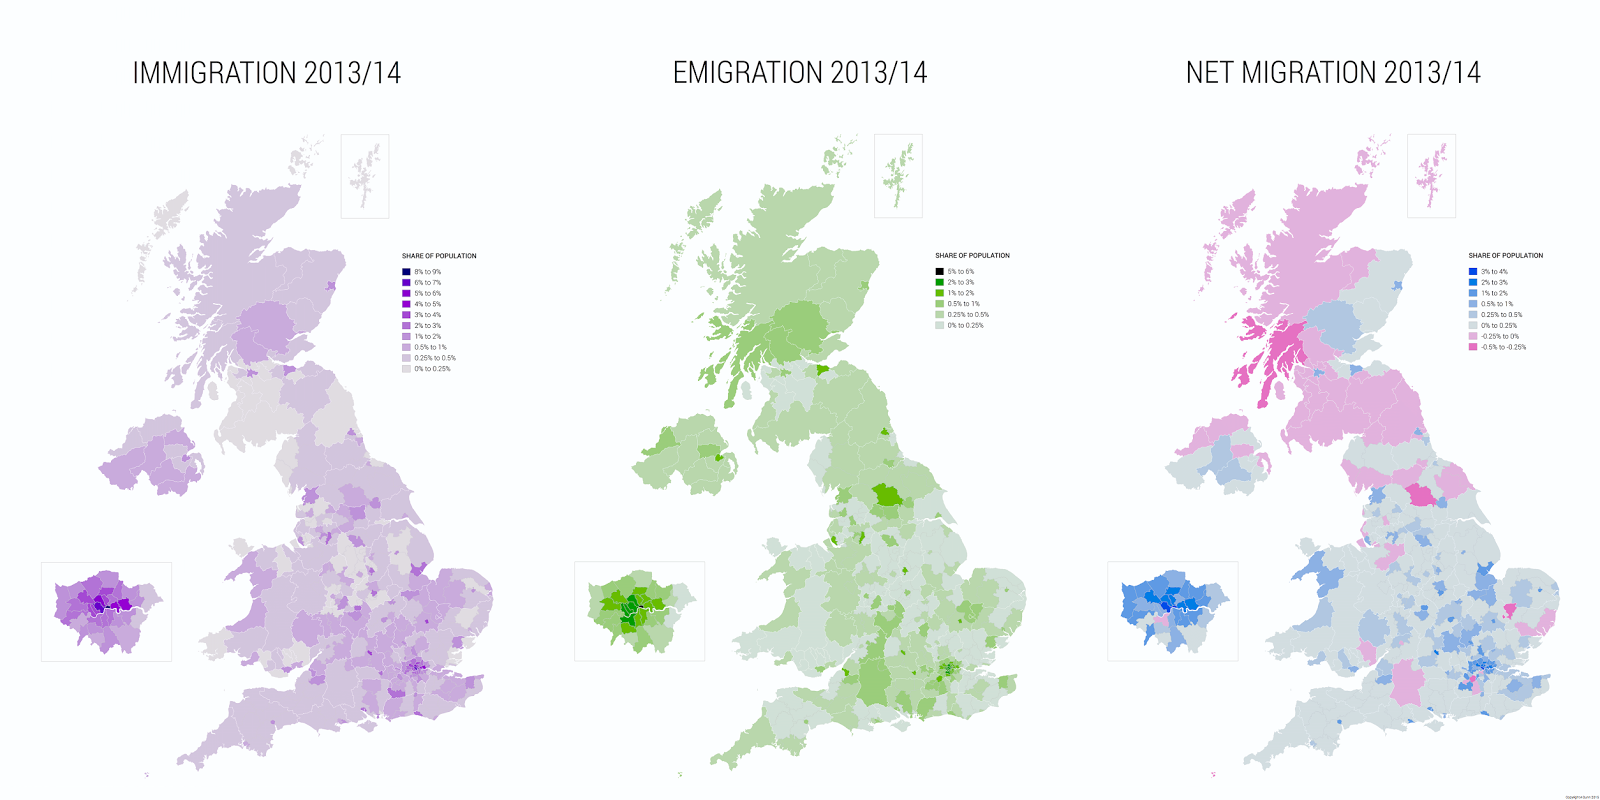 Migration in the UK between 2013 and 2014